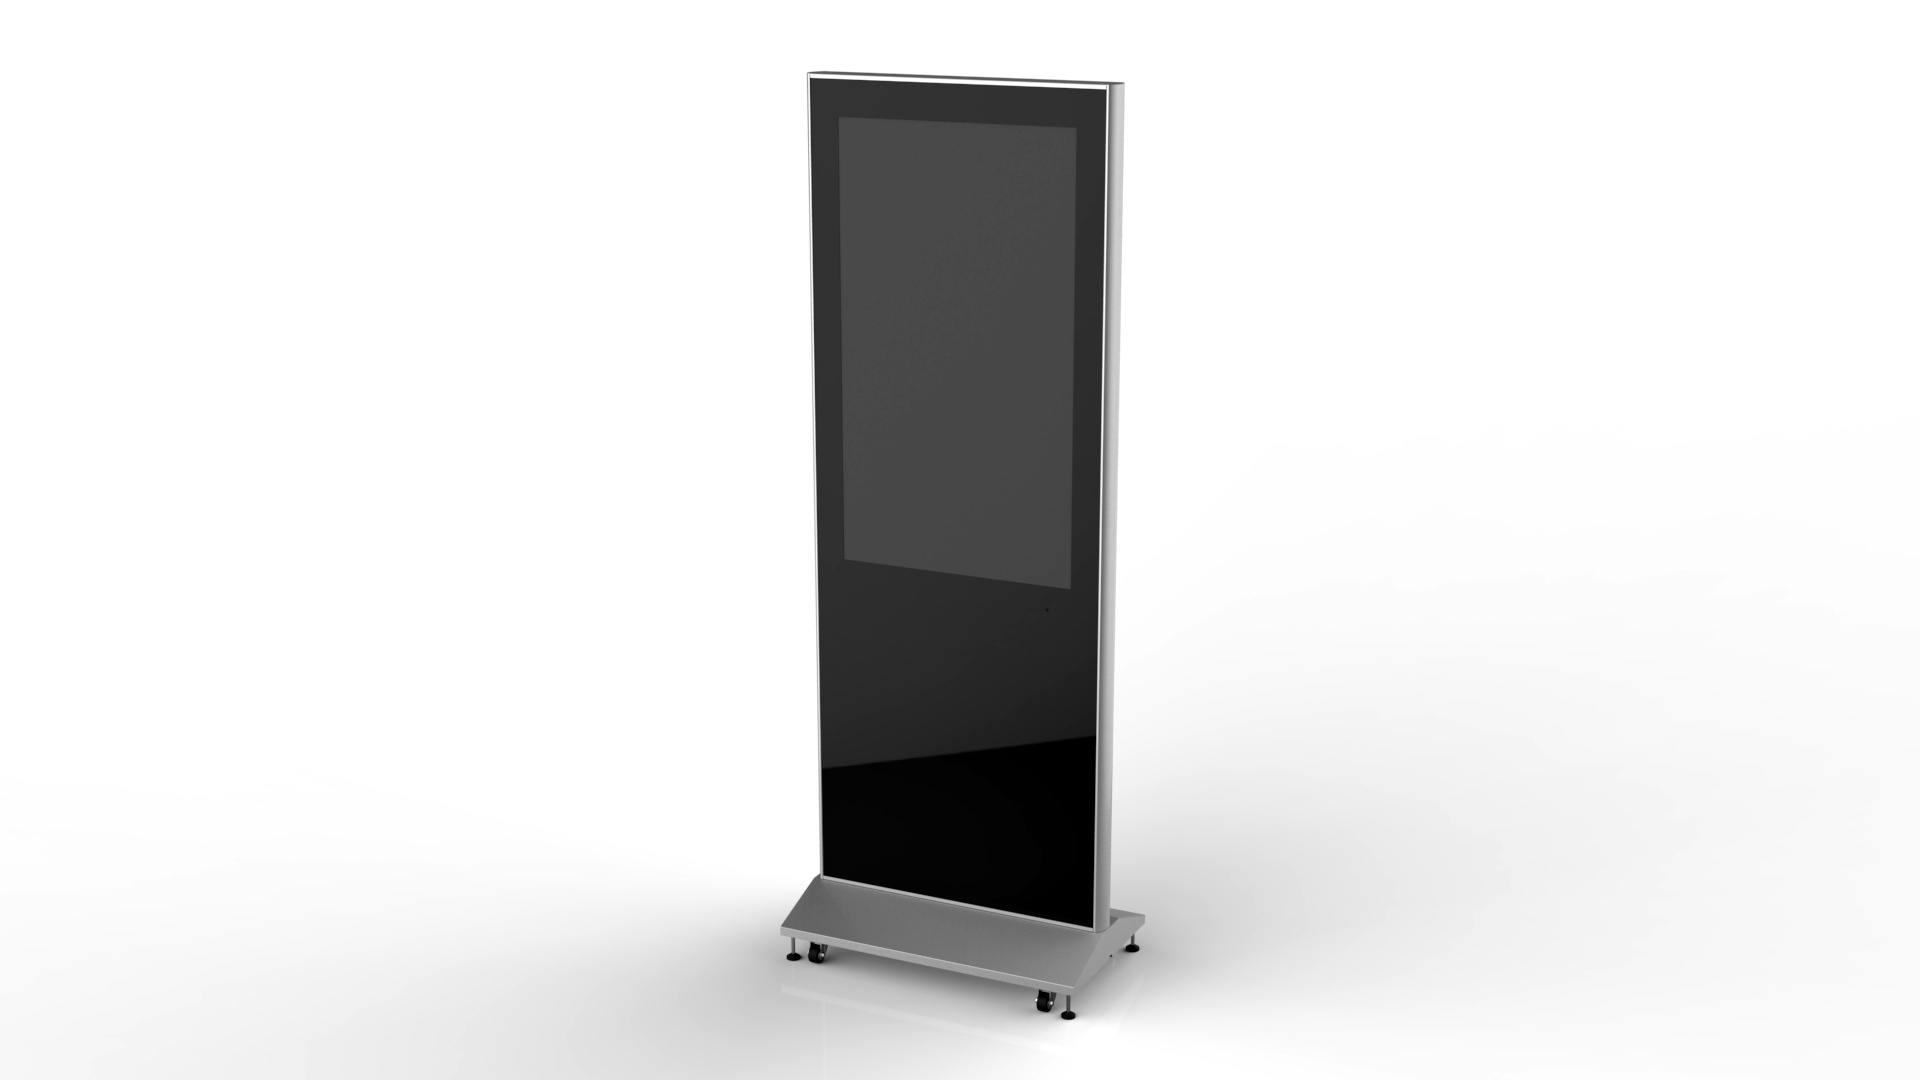 43inch Android Based Digital Signage LCD Display Kiosk